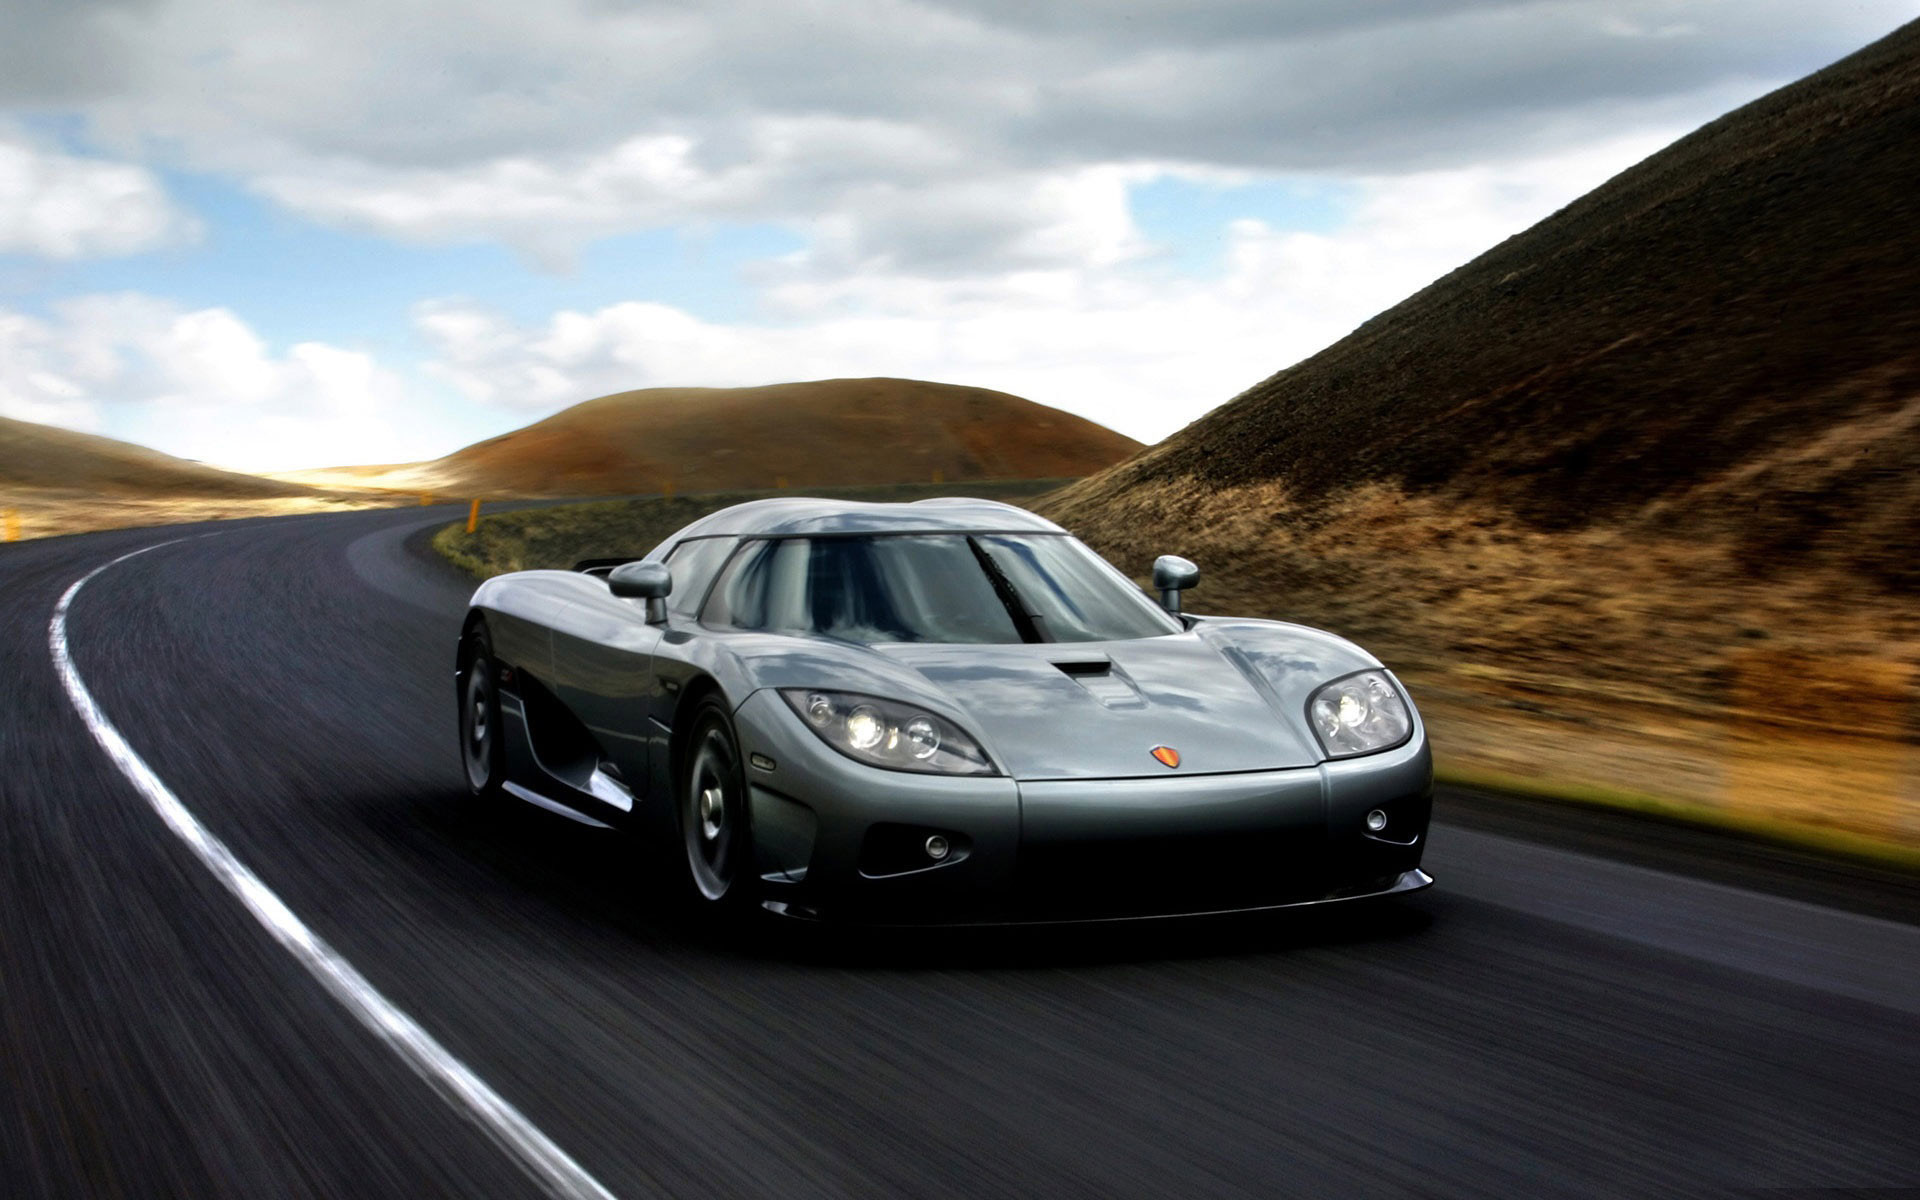 the accomplishments of christian von koenigsegg in the design and manufacture of koenigsegg ccx Field of personality development in the works of paper the accomplishments of christian von koenigsegg in the design and manufacture of koenigsegg ccx.